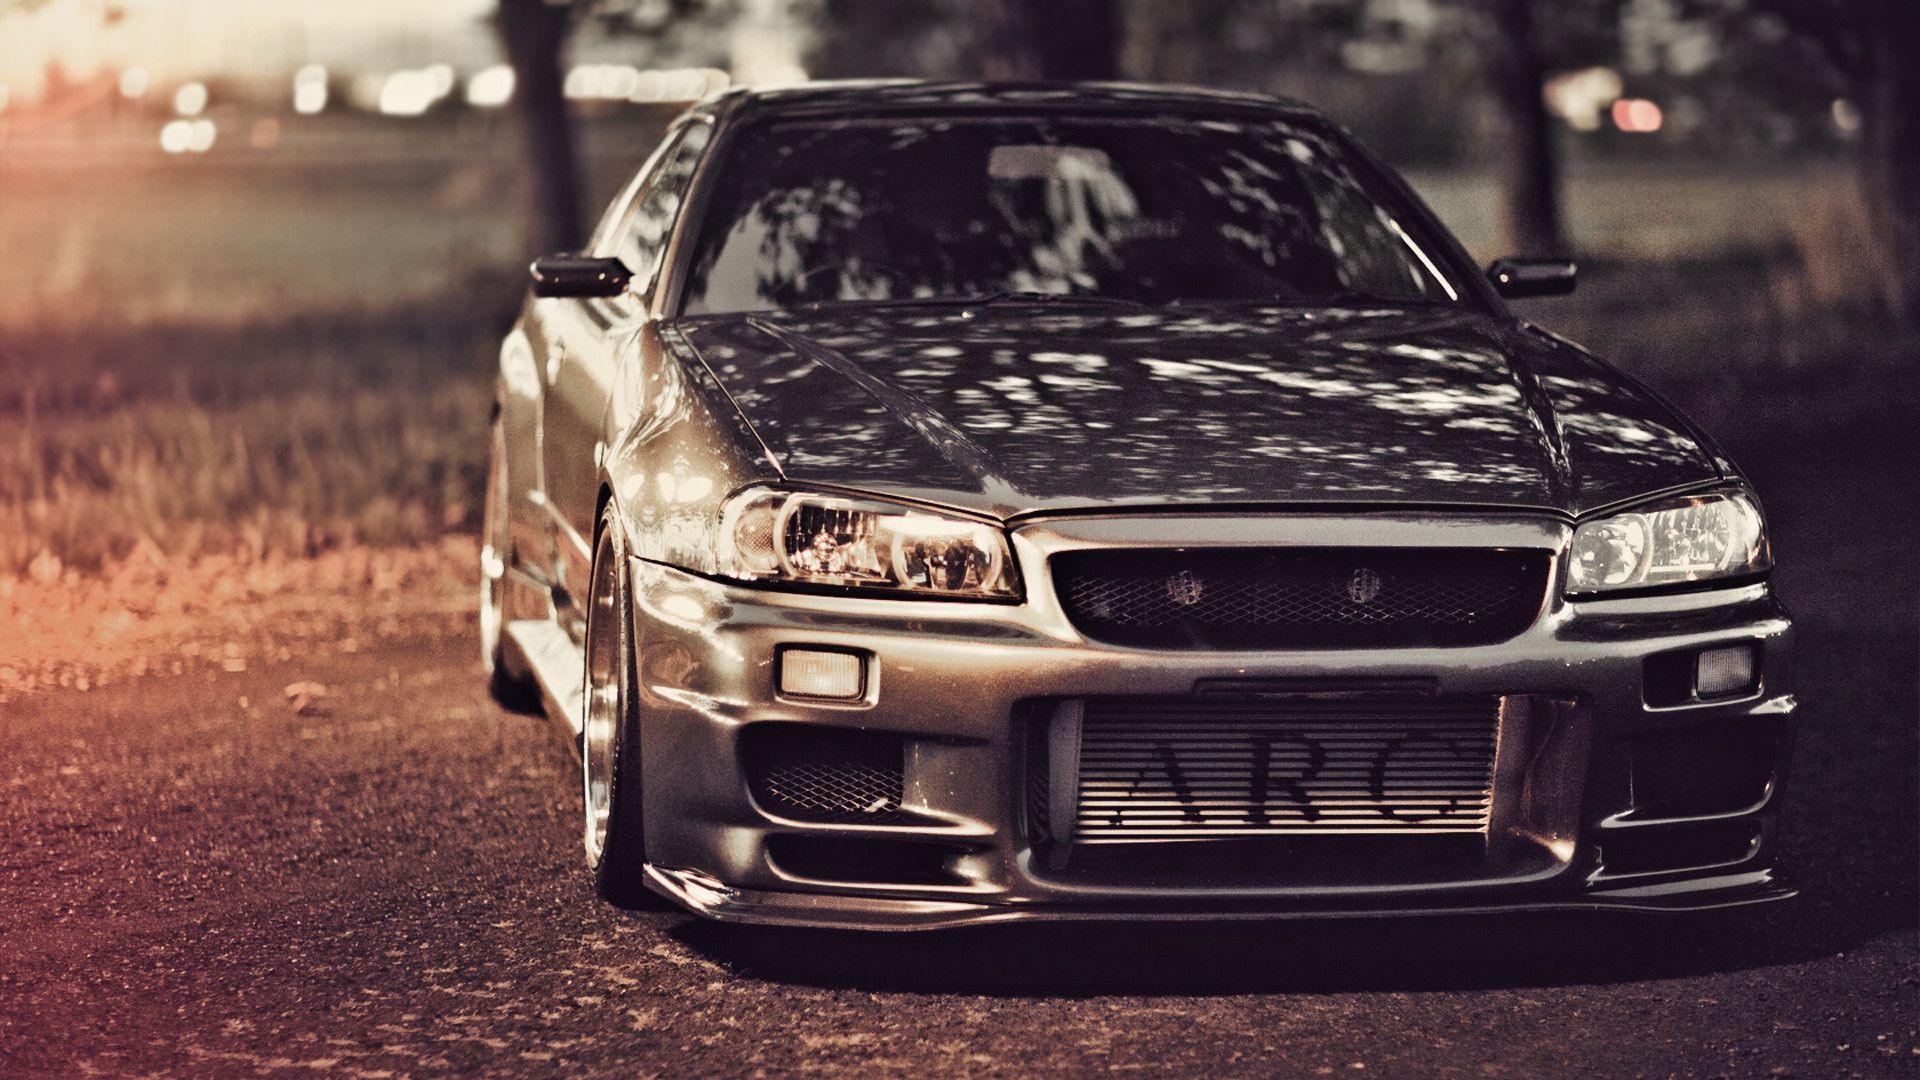 Wallpapers nissan skyline gt r r34 nissan tuning road sky 1920x1080